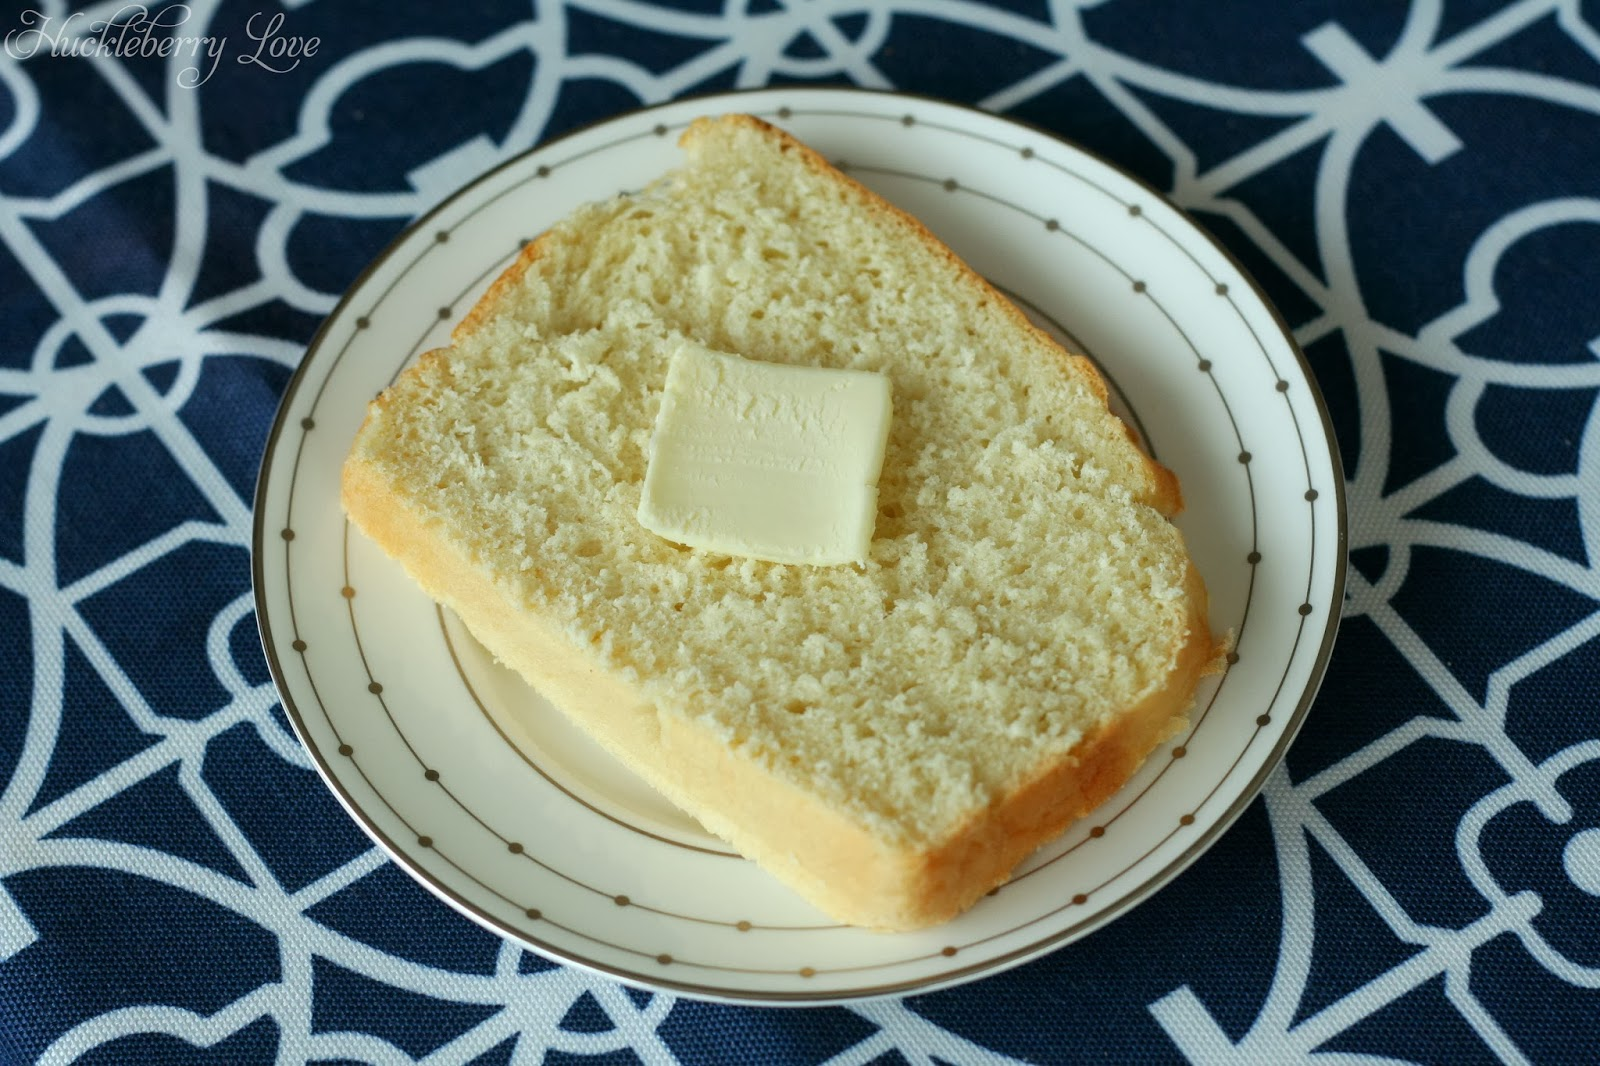 grandma light bread You may speed up this process by placing the covered bowl inside the oven with the oven light on grandma b's butterscotch pie grandma's country white bread.